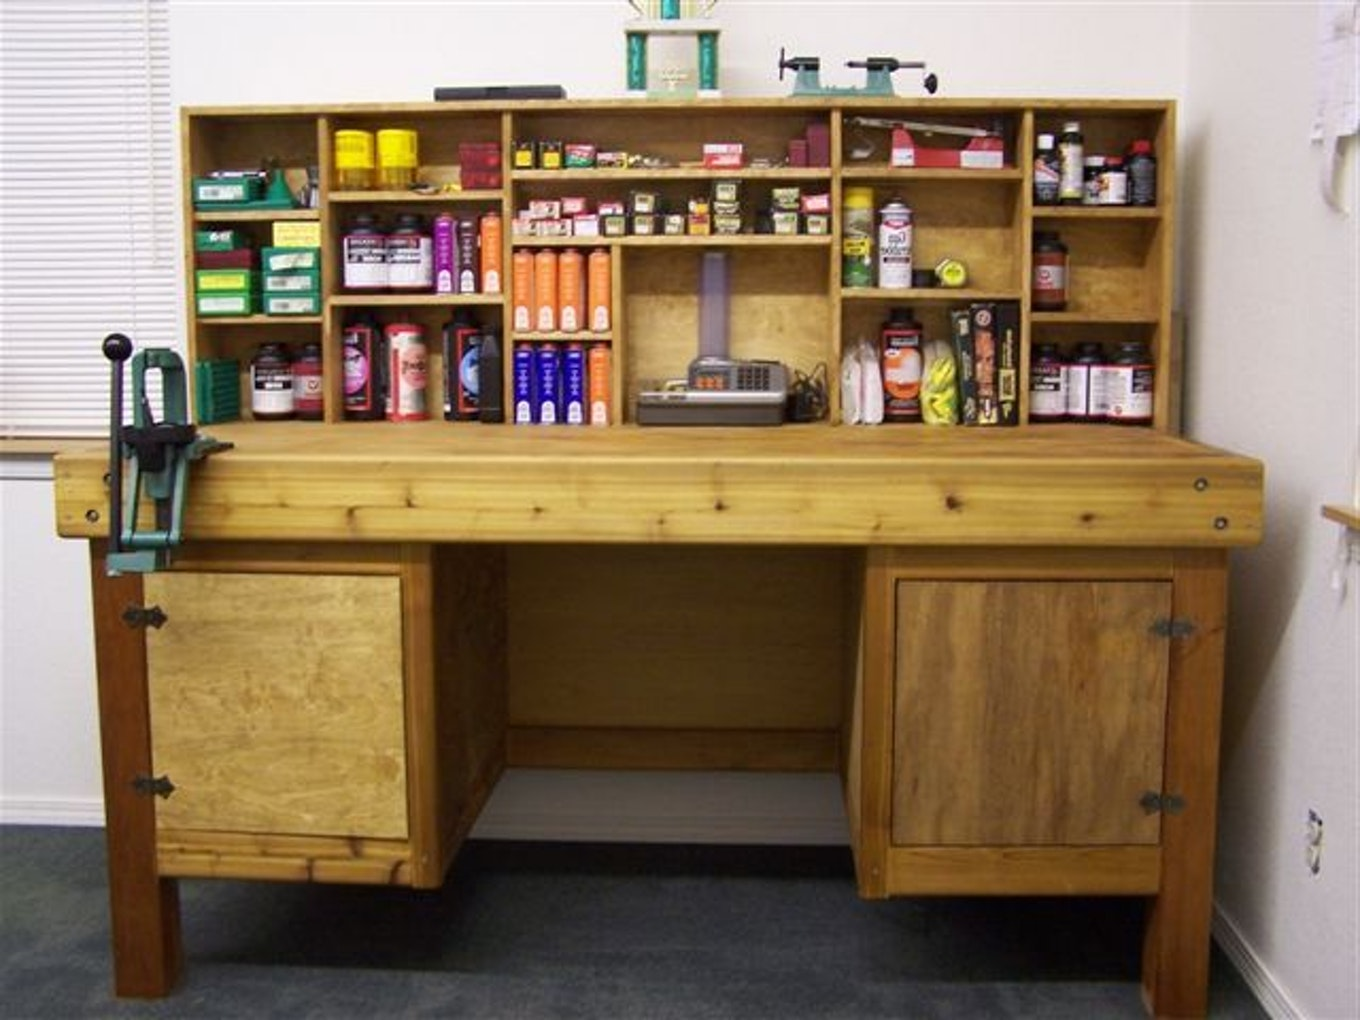 Reloading Benches for Workspace Room Furniture Design: Reloading Cabinet Plans | Reloading Table Ideas | Reloading Benches